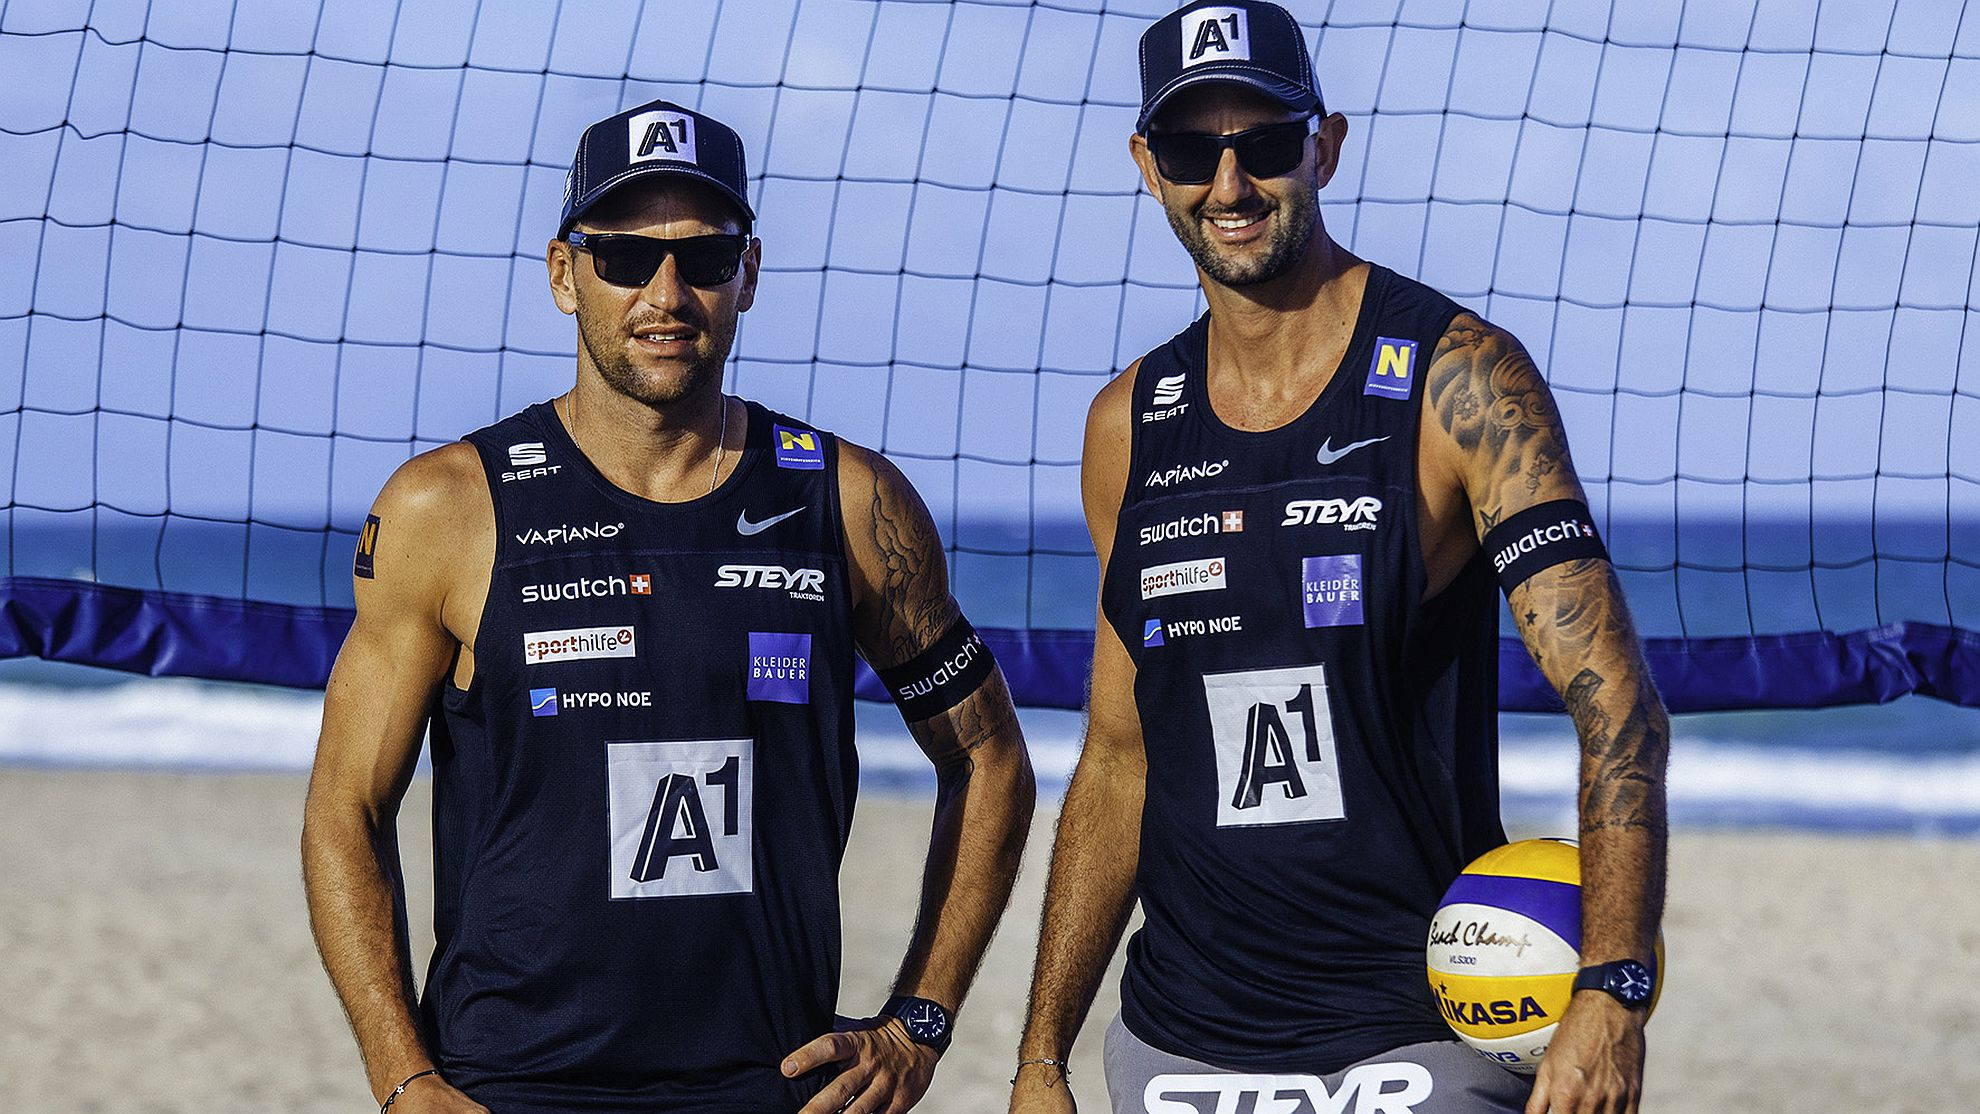 Clemens Doppler/Alex Horst 2018 - FOTO © BeachMajors